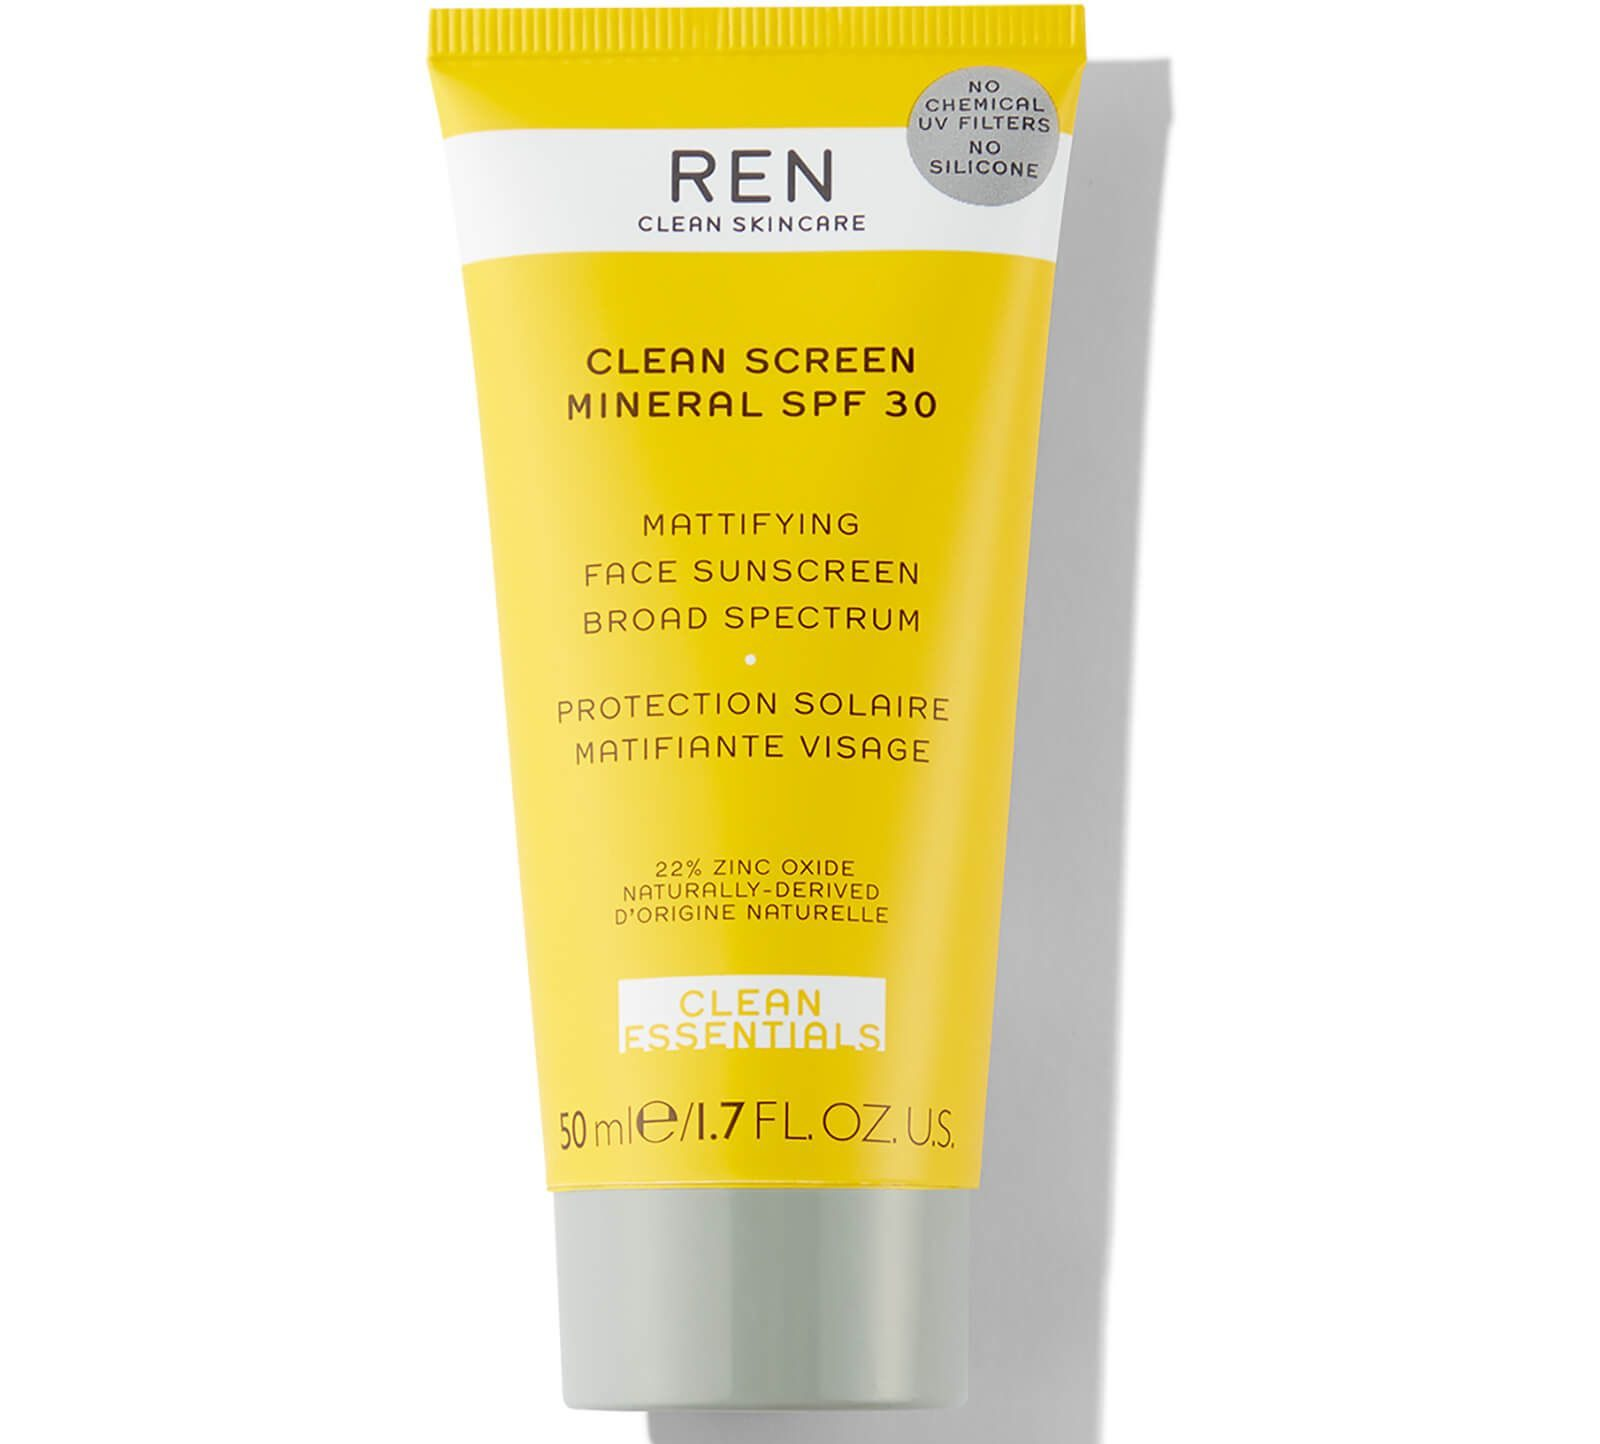 My Celebrity Life – Ren Clean Skincare Clean Screen Mineral SPF30